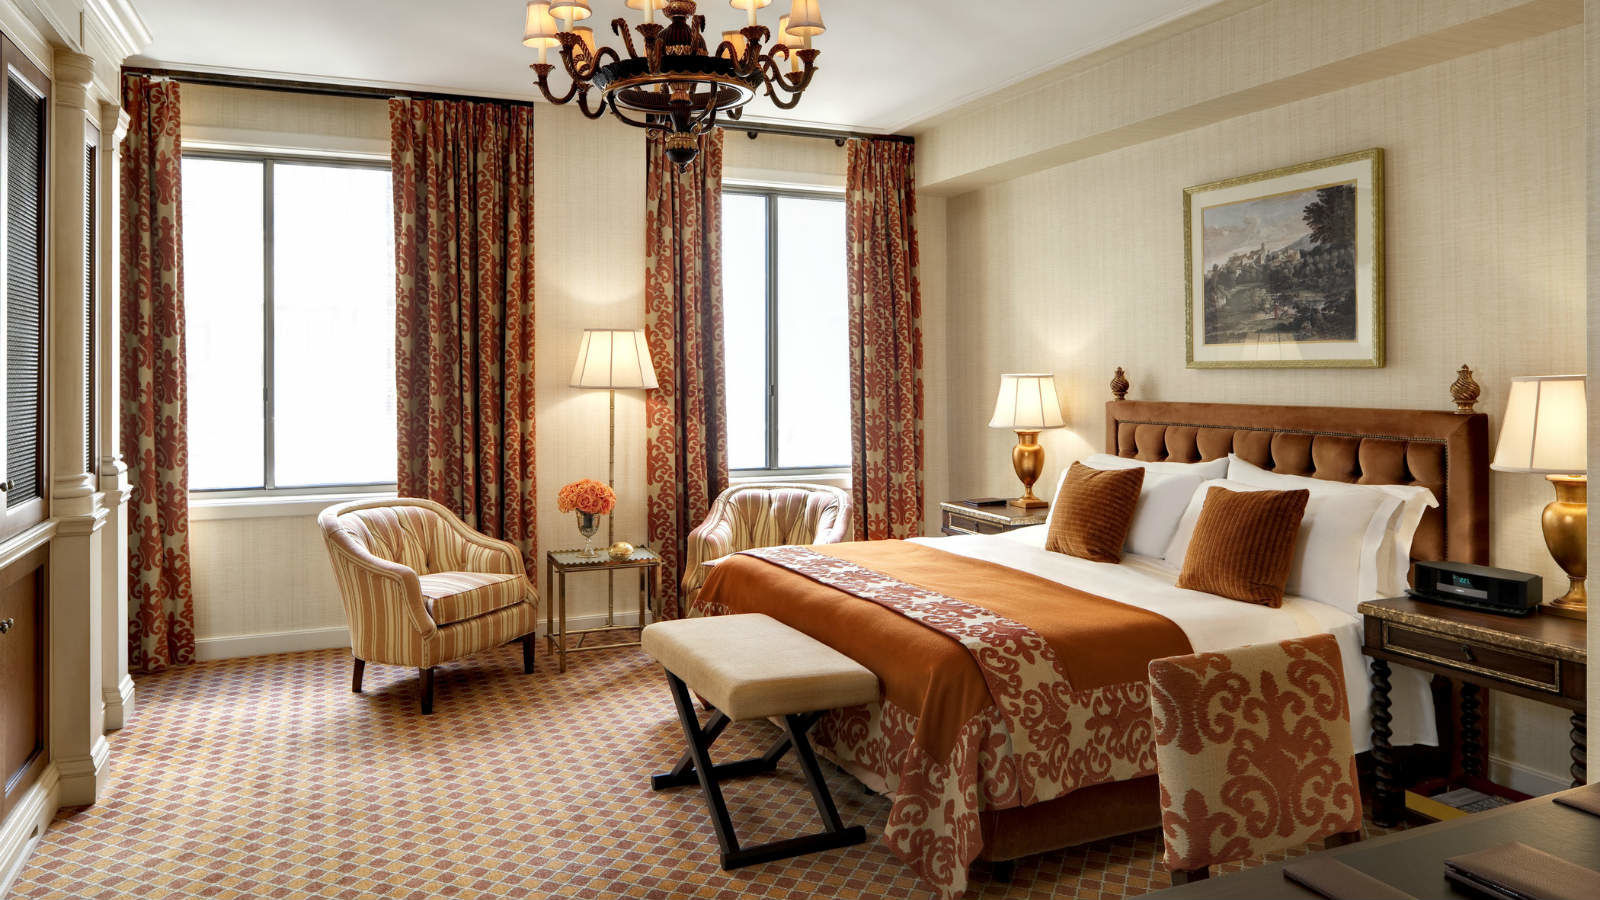 The St. Regis Washington, D.C. - Premier Deluxe Room